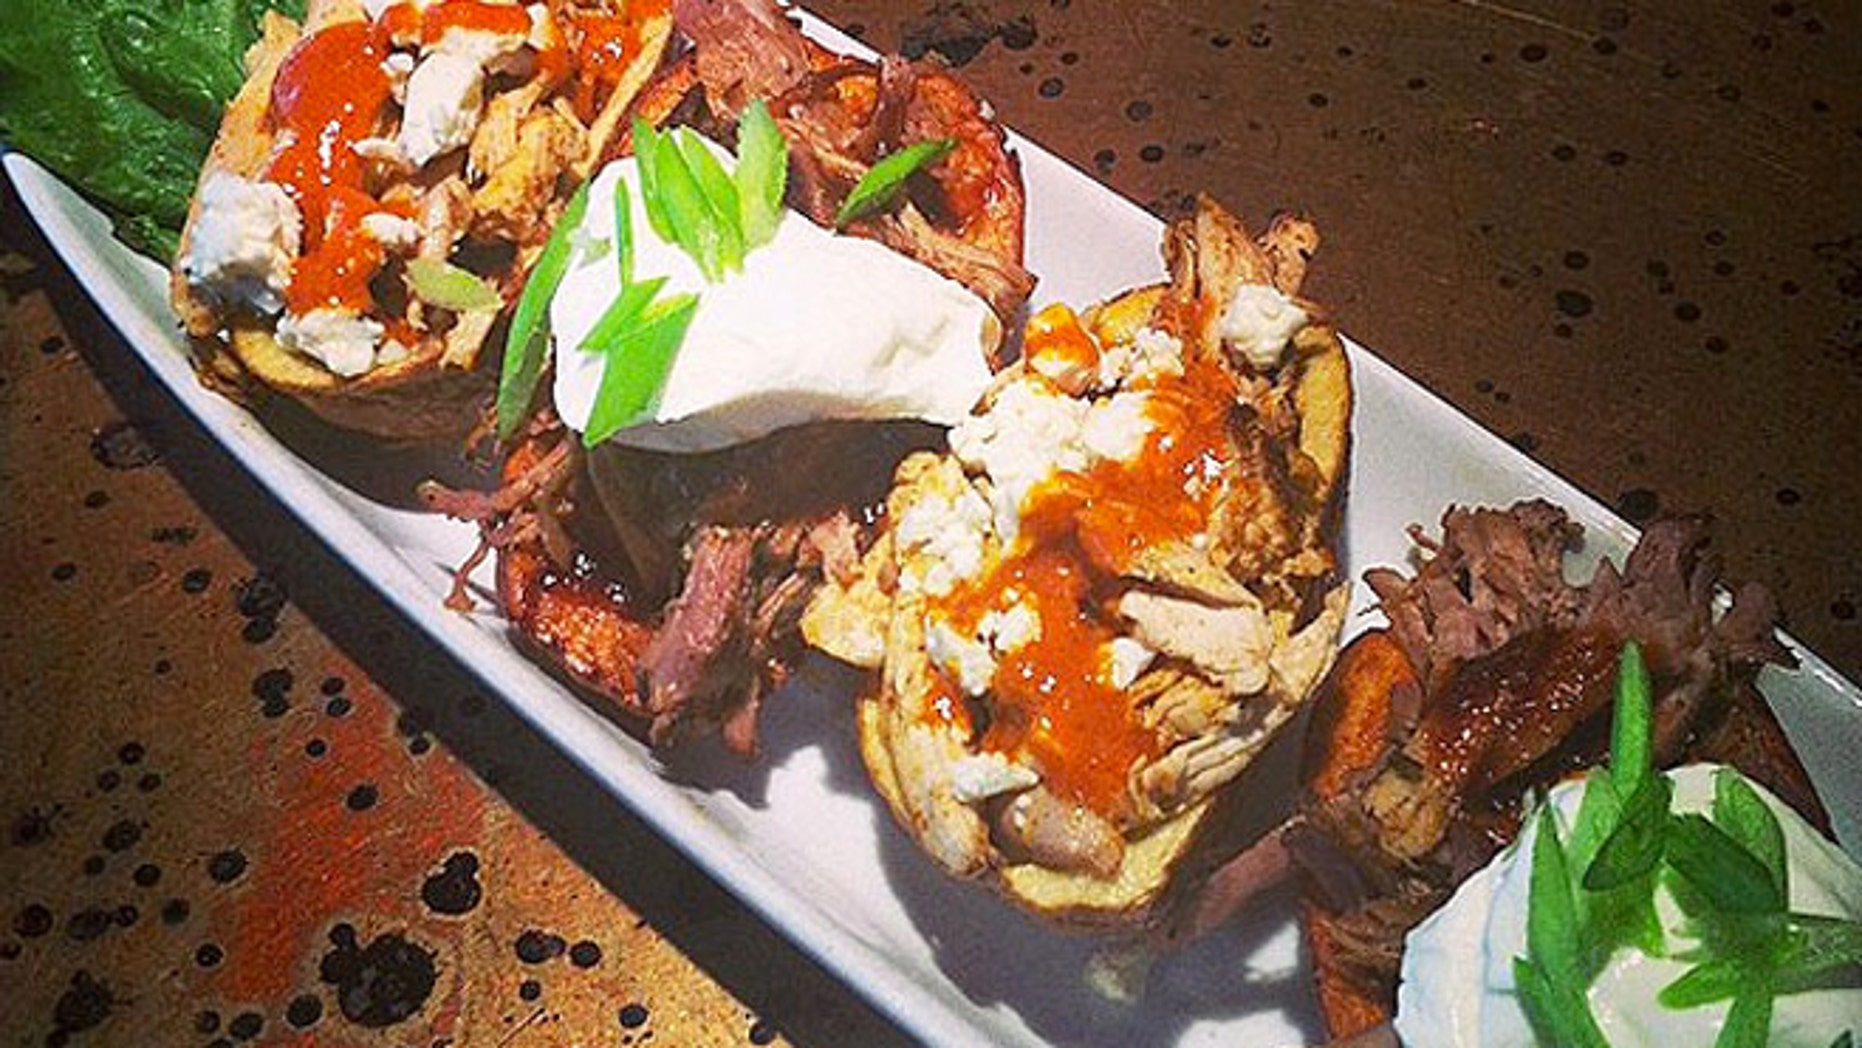 Proceeds for Atomic Grill's potato skin special will go to the West Virginia Foundation for Rape Information Services.